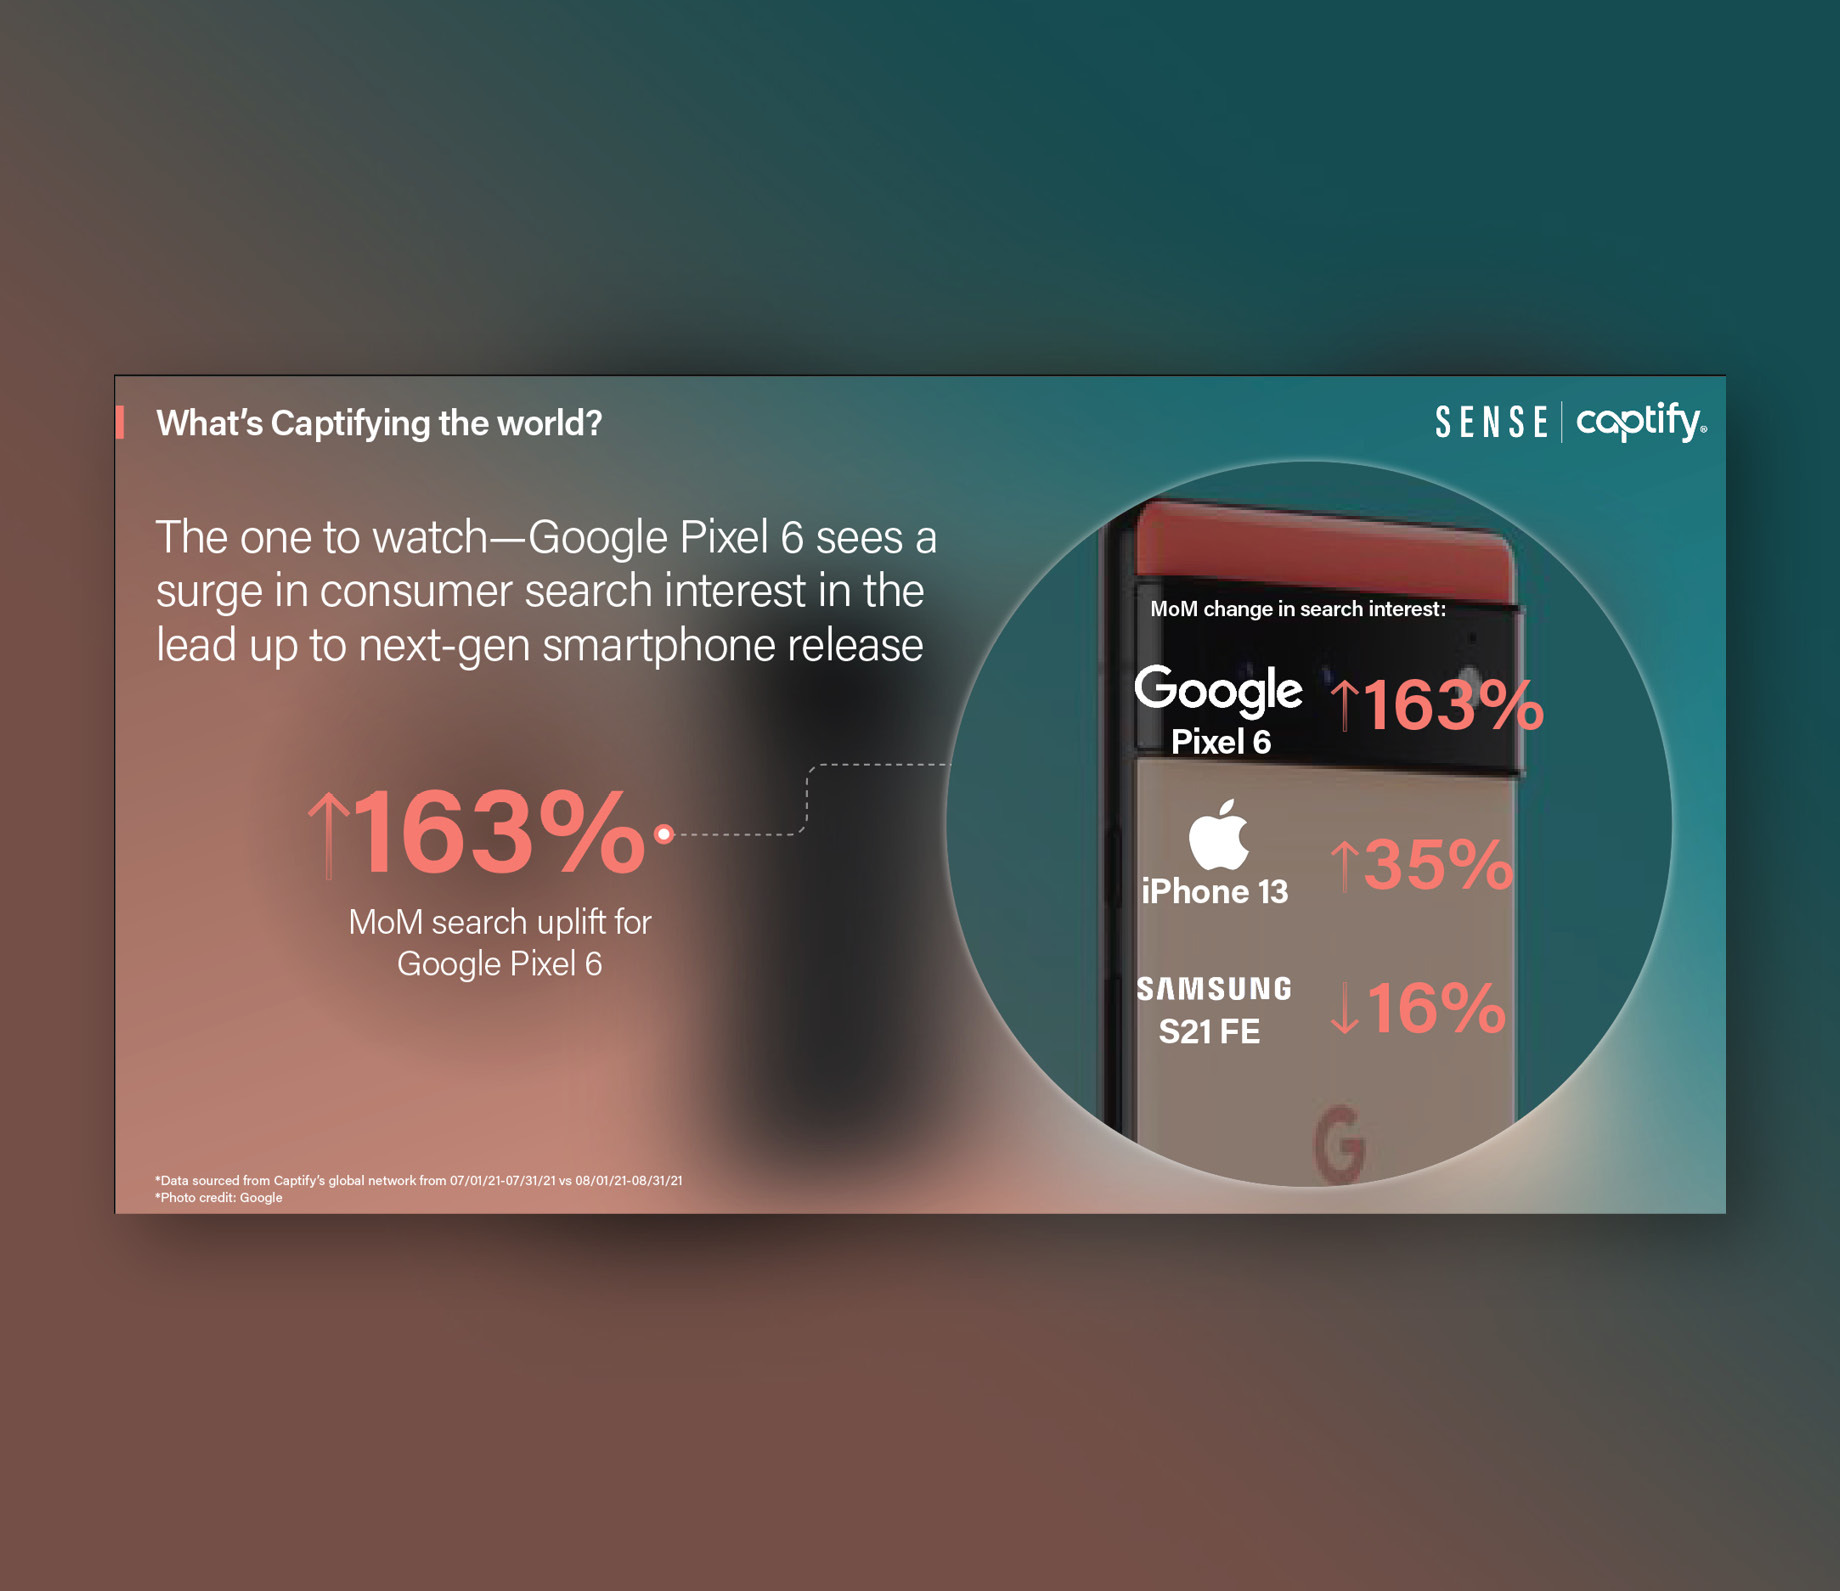 What's Captifying The World: The One To Watch—Google Pixel 6 Sees A Surge In Consumer Search Interest In The Lead Up To Next-Gen Smartphone Release